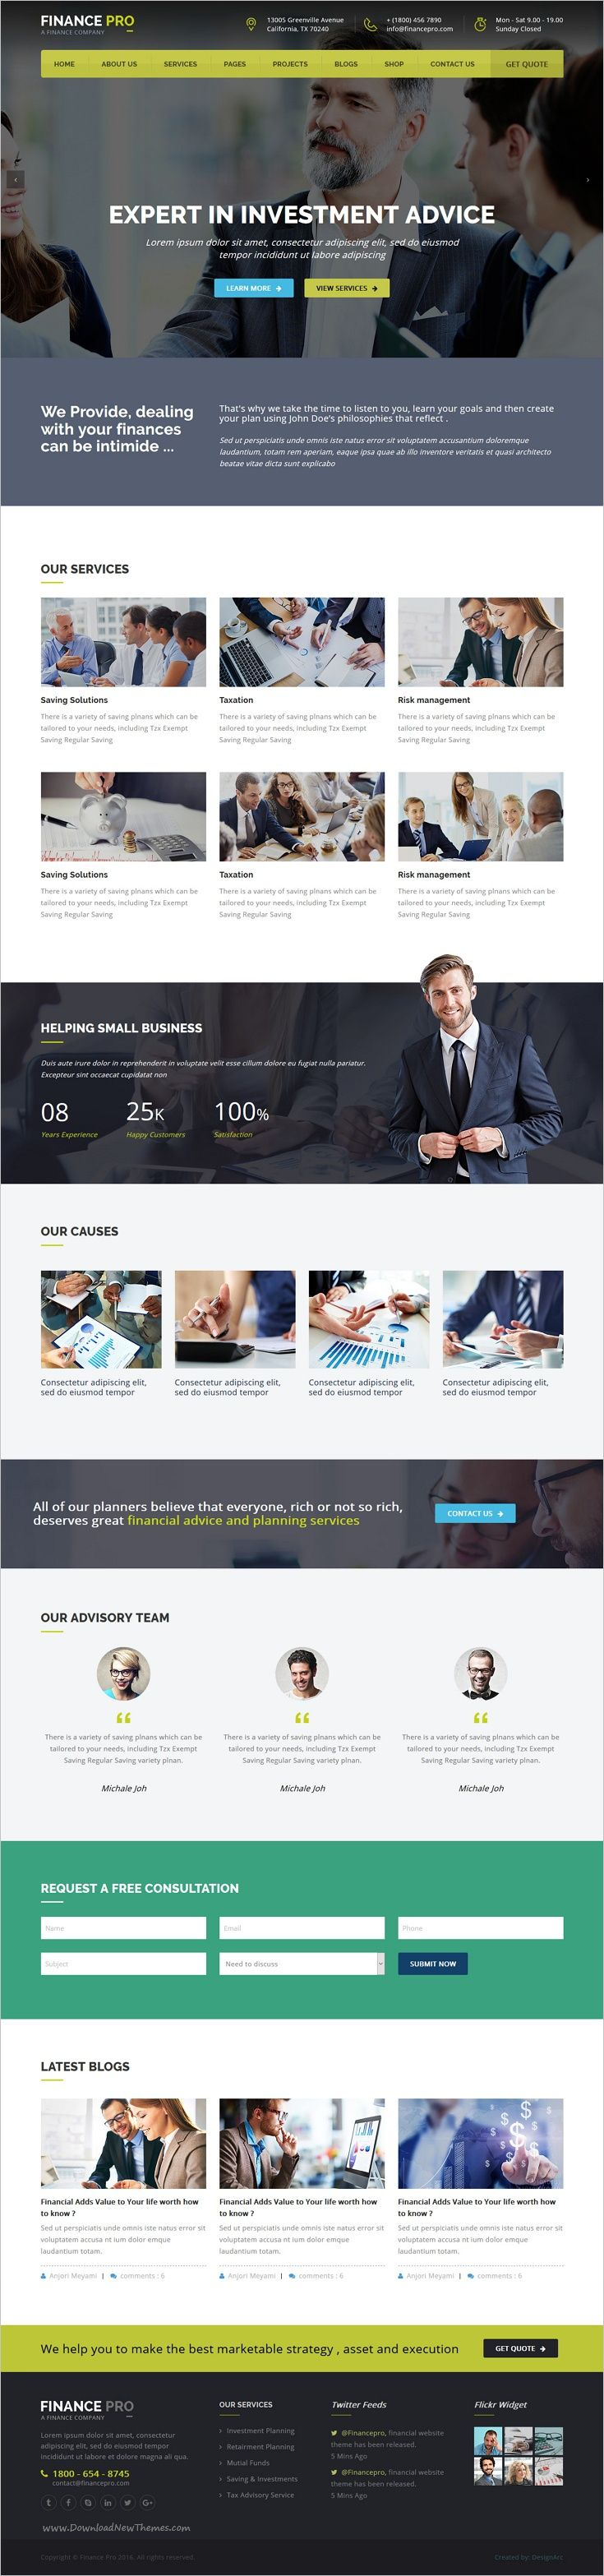 Finance Pro is a clean and Modern #Bootstrap #HTML5 Template for #corporate website like Financial Advisor, Accountant, Consulting Firms, insurance companies website download now➩ https://themeforest.net/item/finance-pro-finance-and-business-html-template/18061077?ref=Datasata